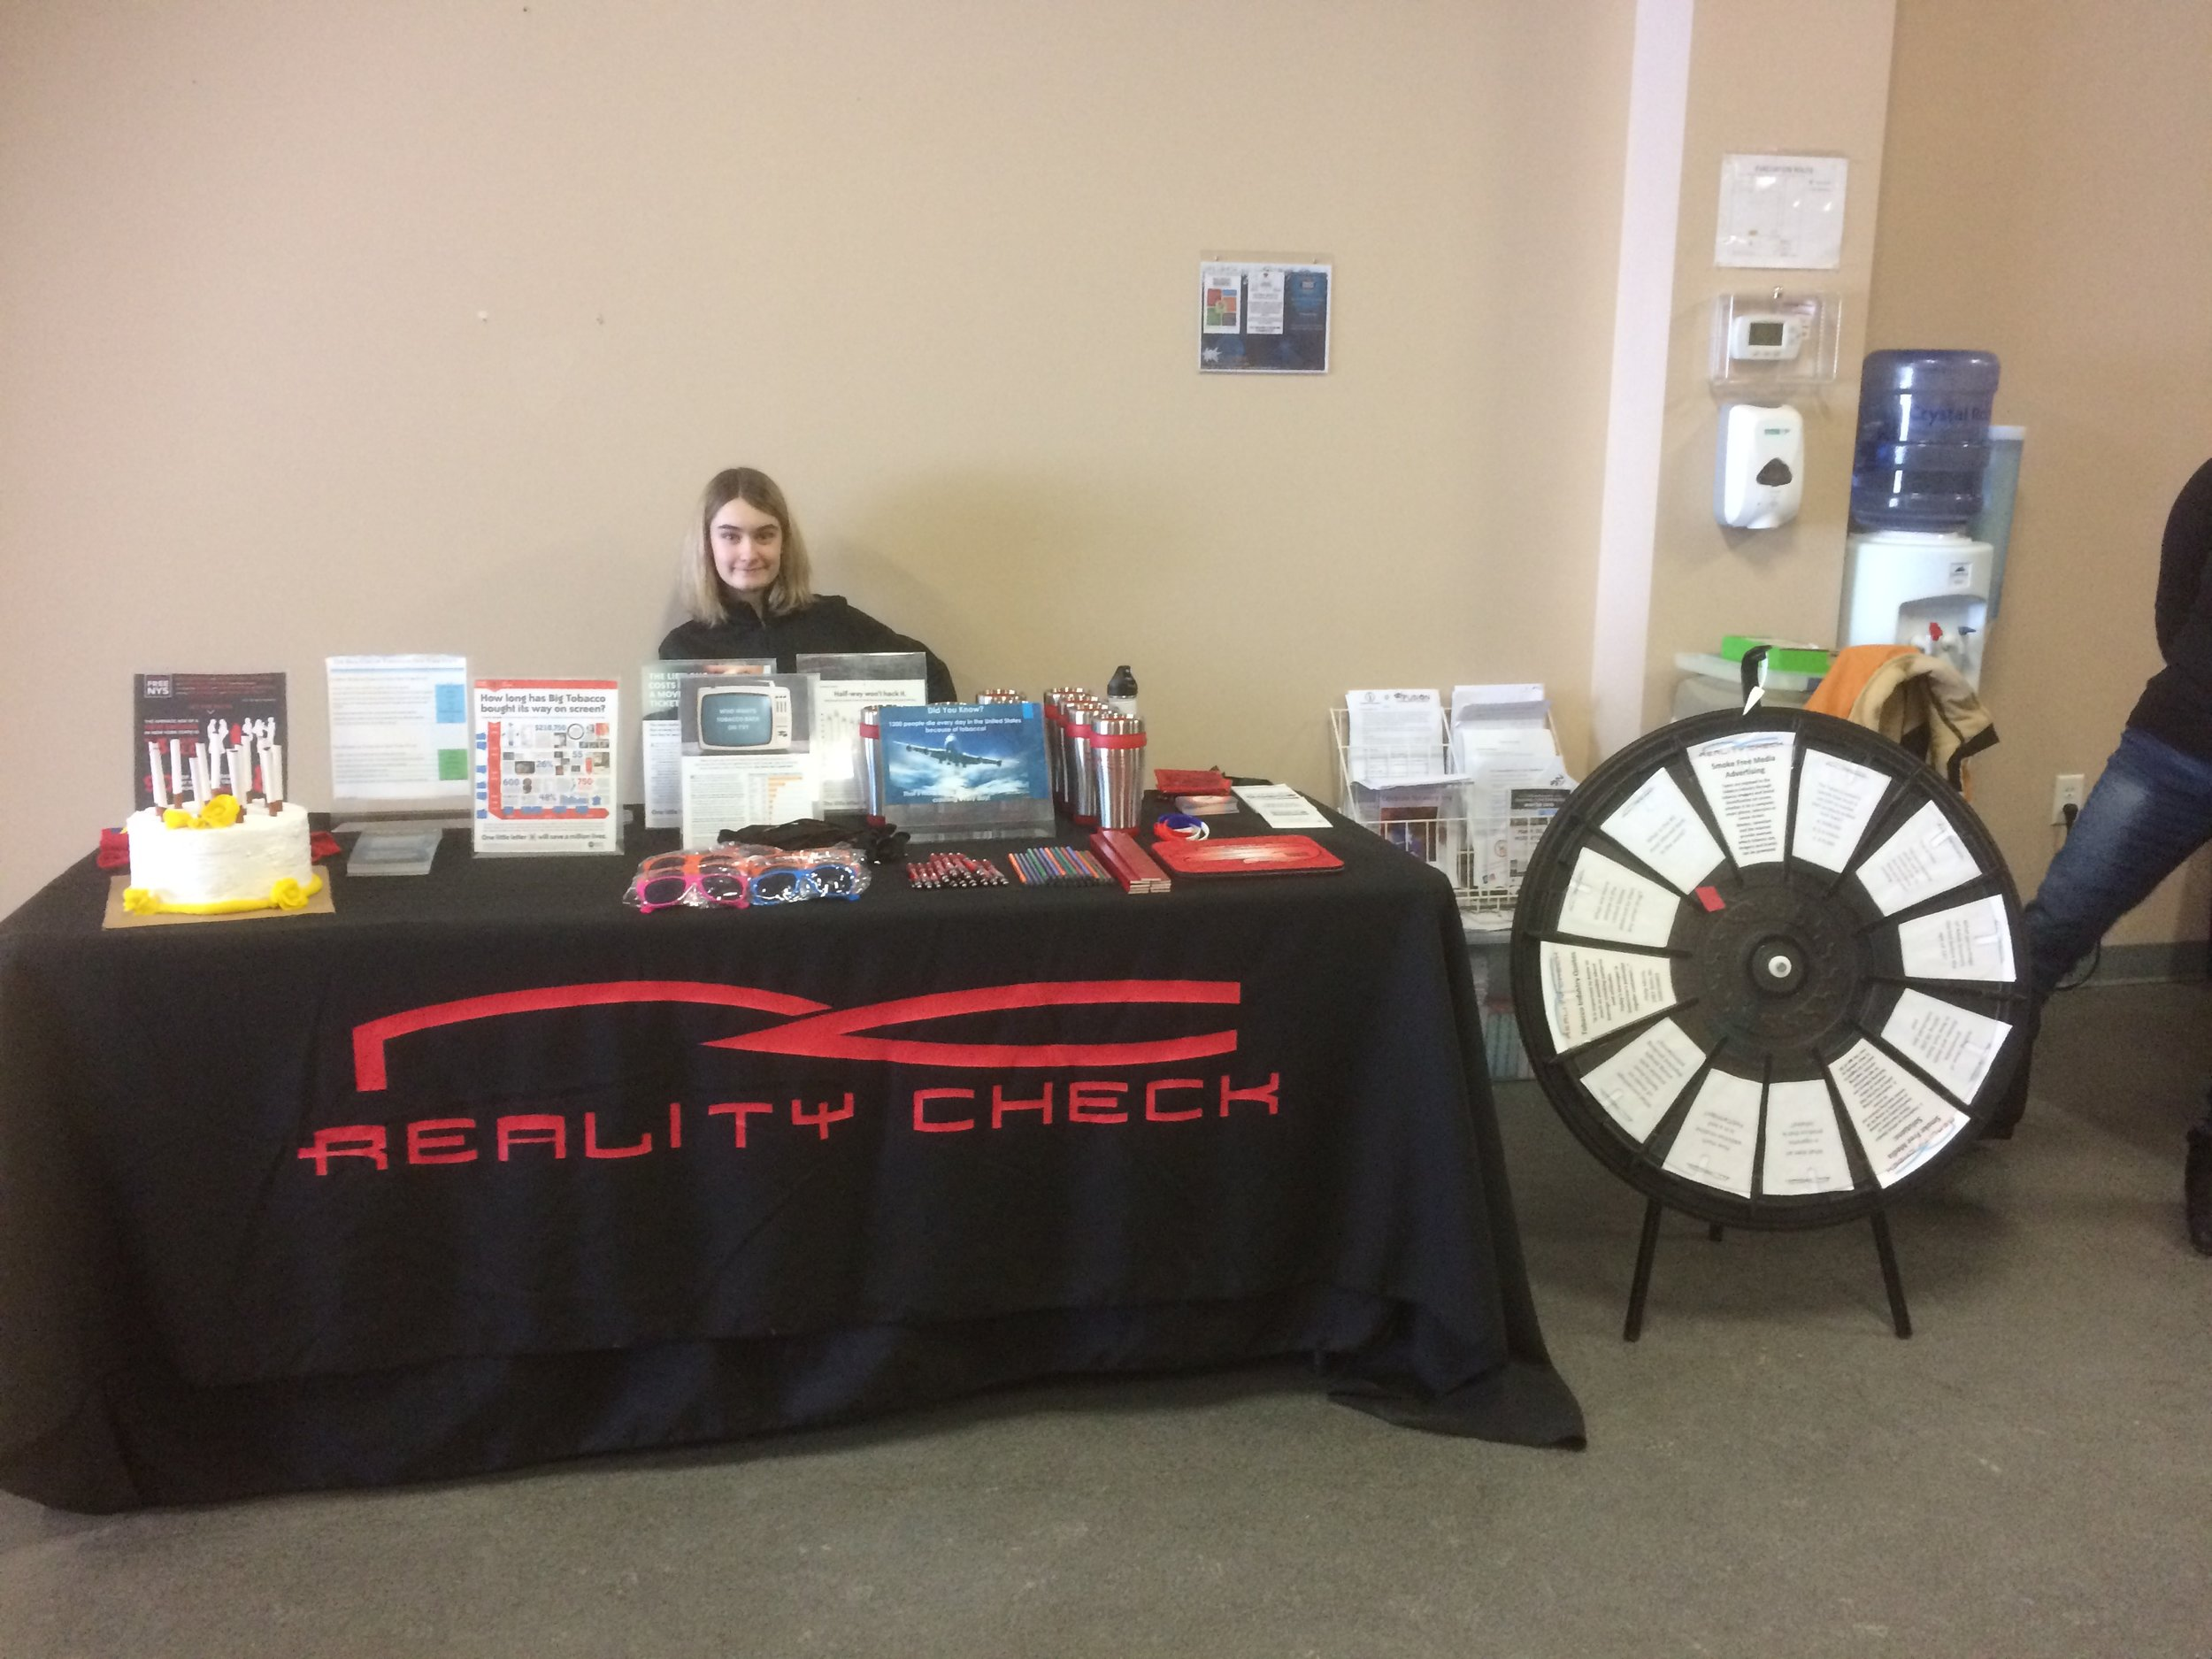 Ava Valetutto at Reality Check Table at Cobleskill Movie Event 2019.jpg